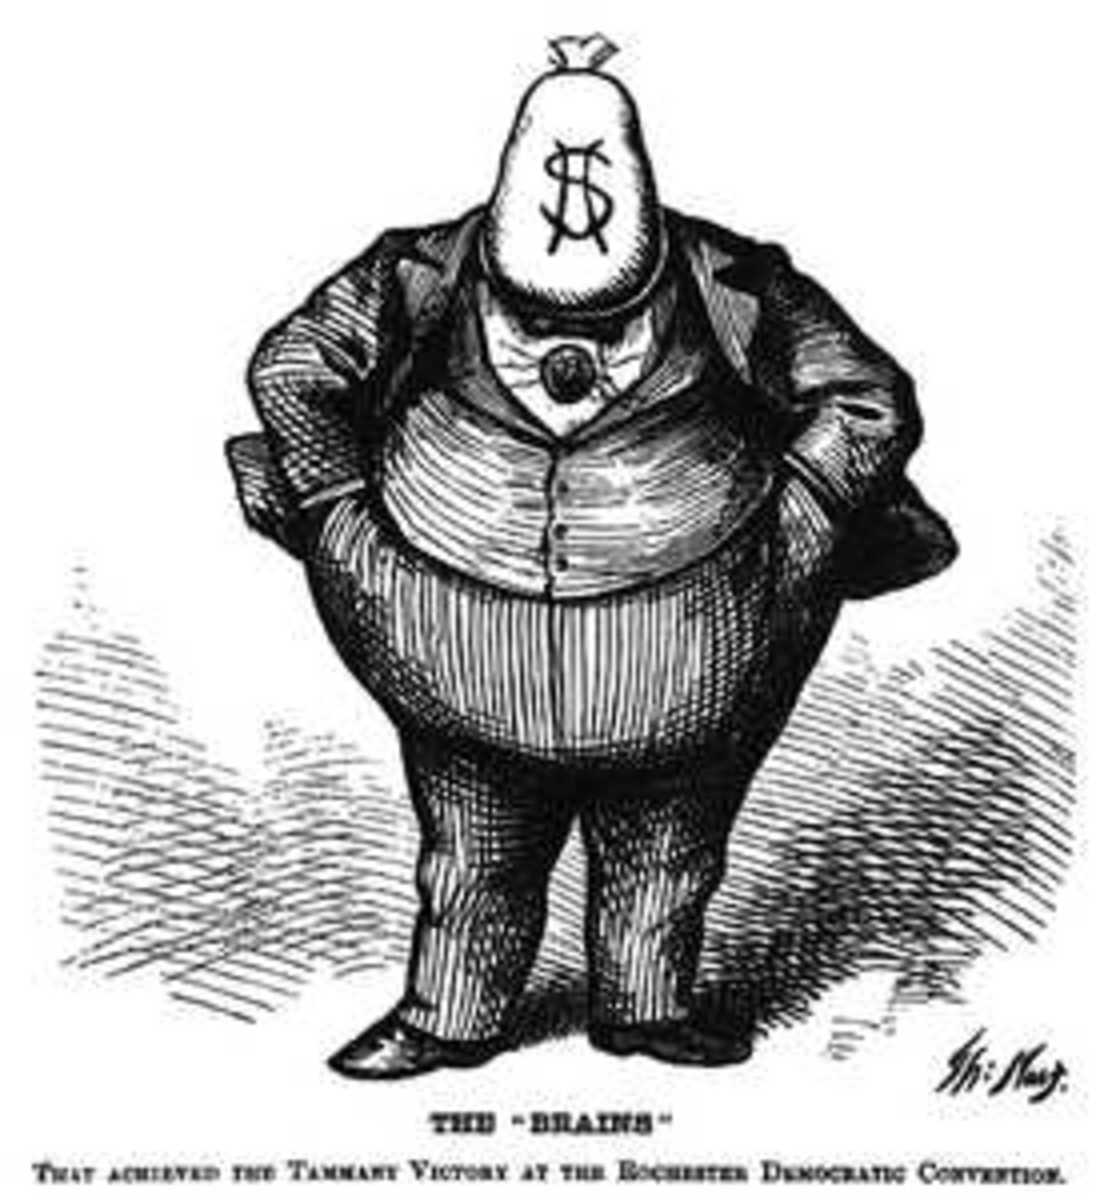 Thomas Nast's Boss Tweed Cartoon